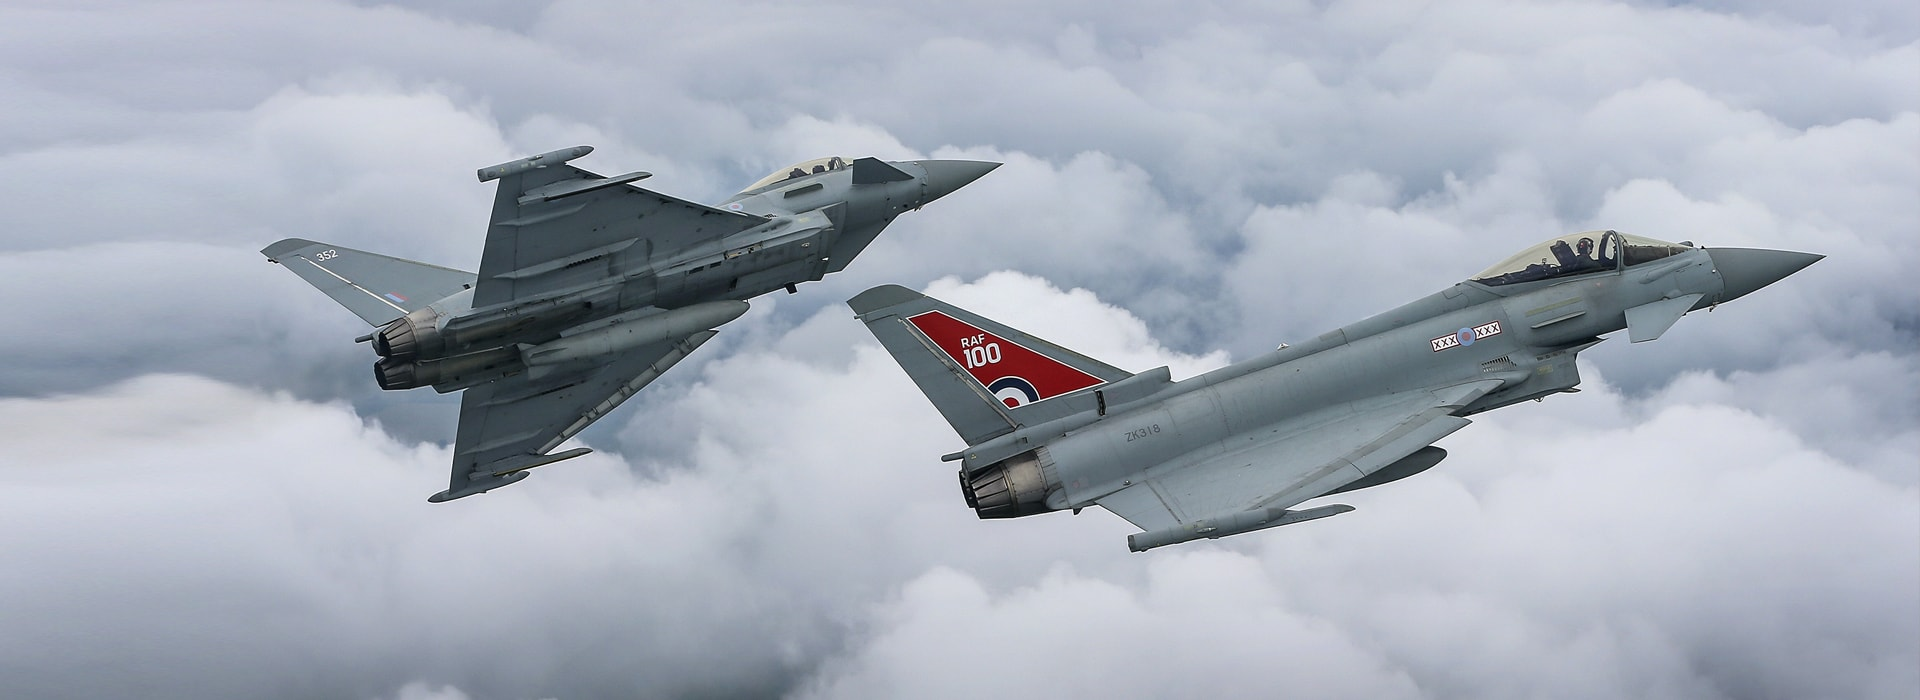 RAF News is the official newspaper of the Royal Air Force, UK